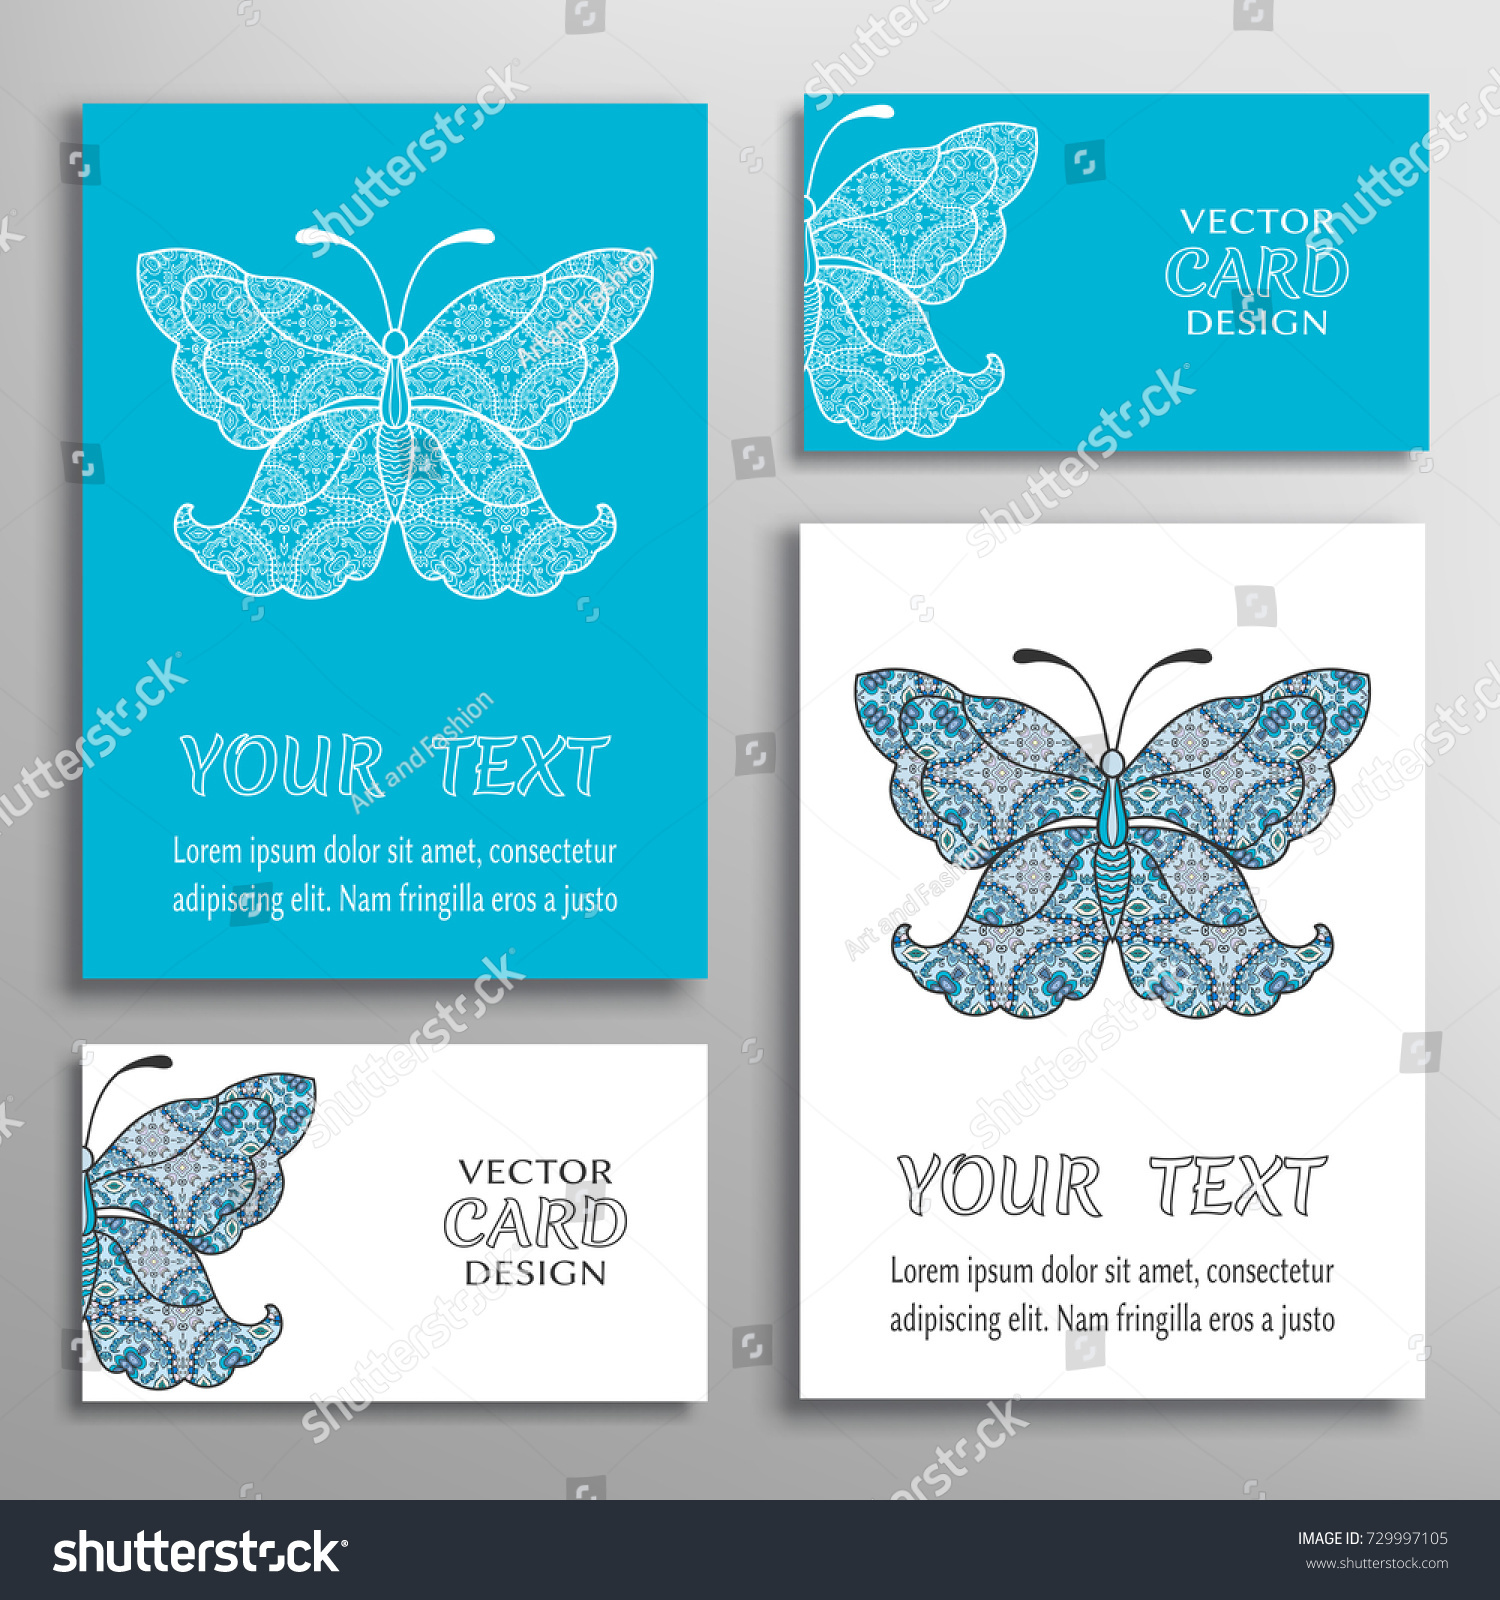 Decorative Butterfly Invitations Greeting Business Cards Stock ...